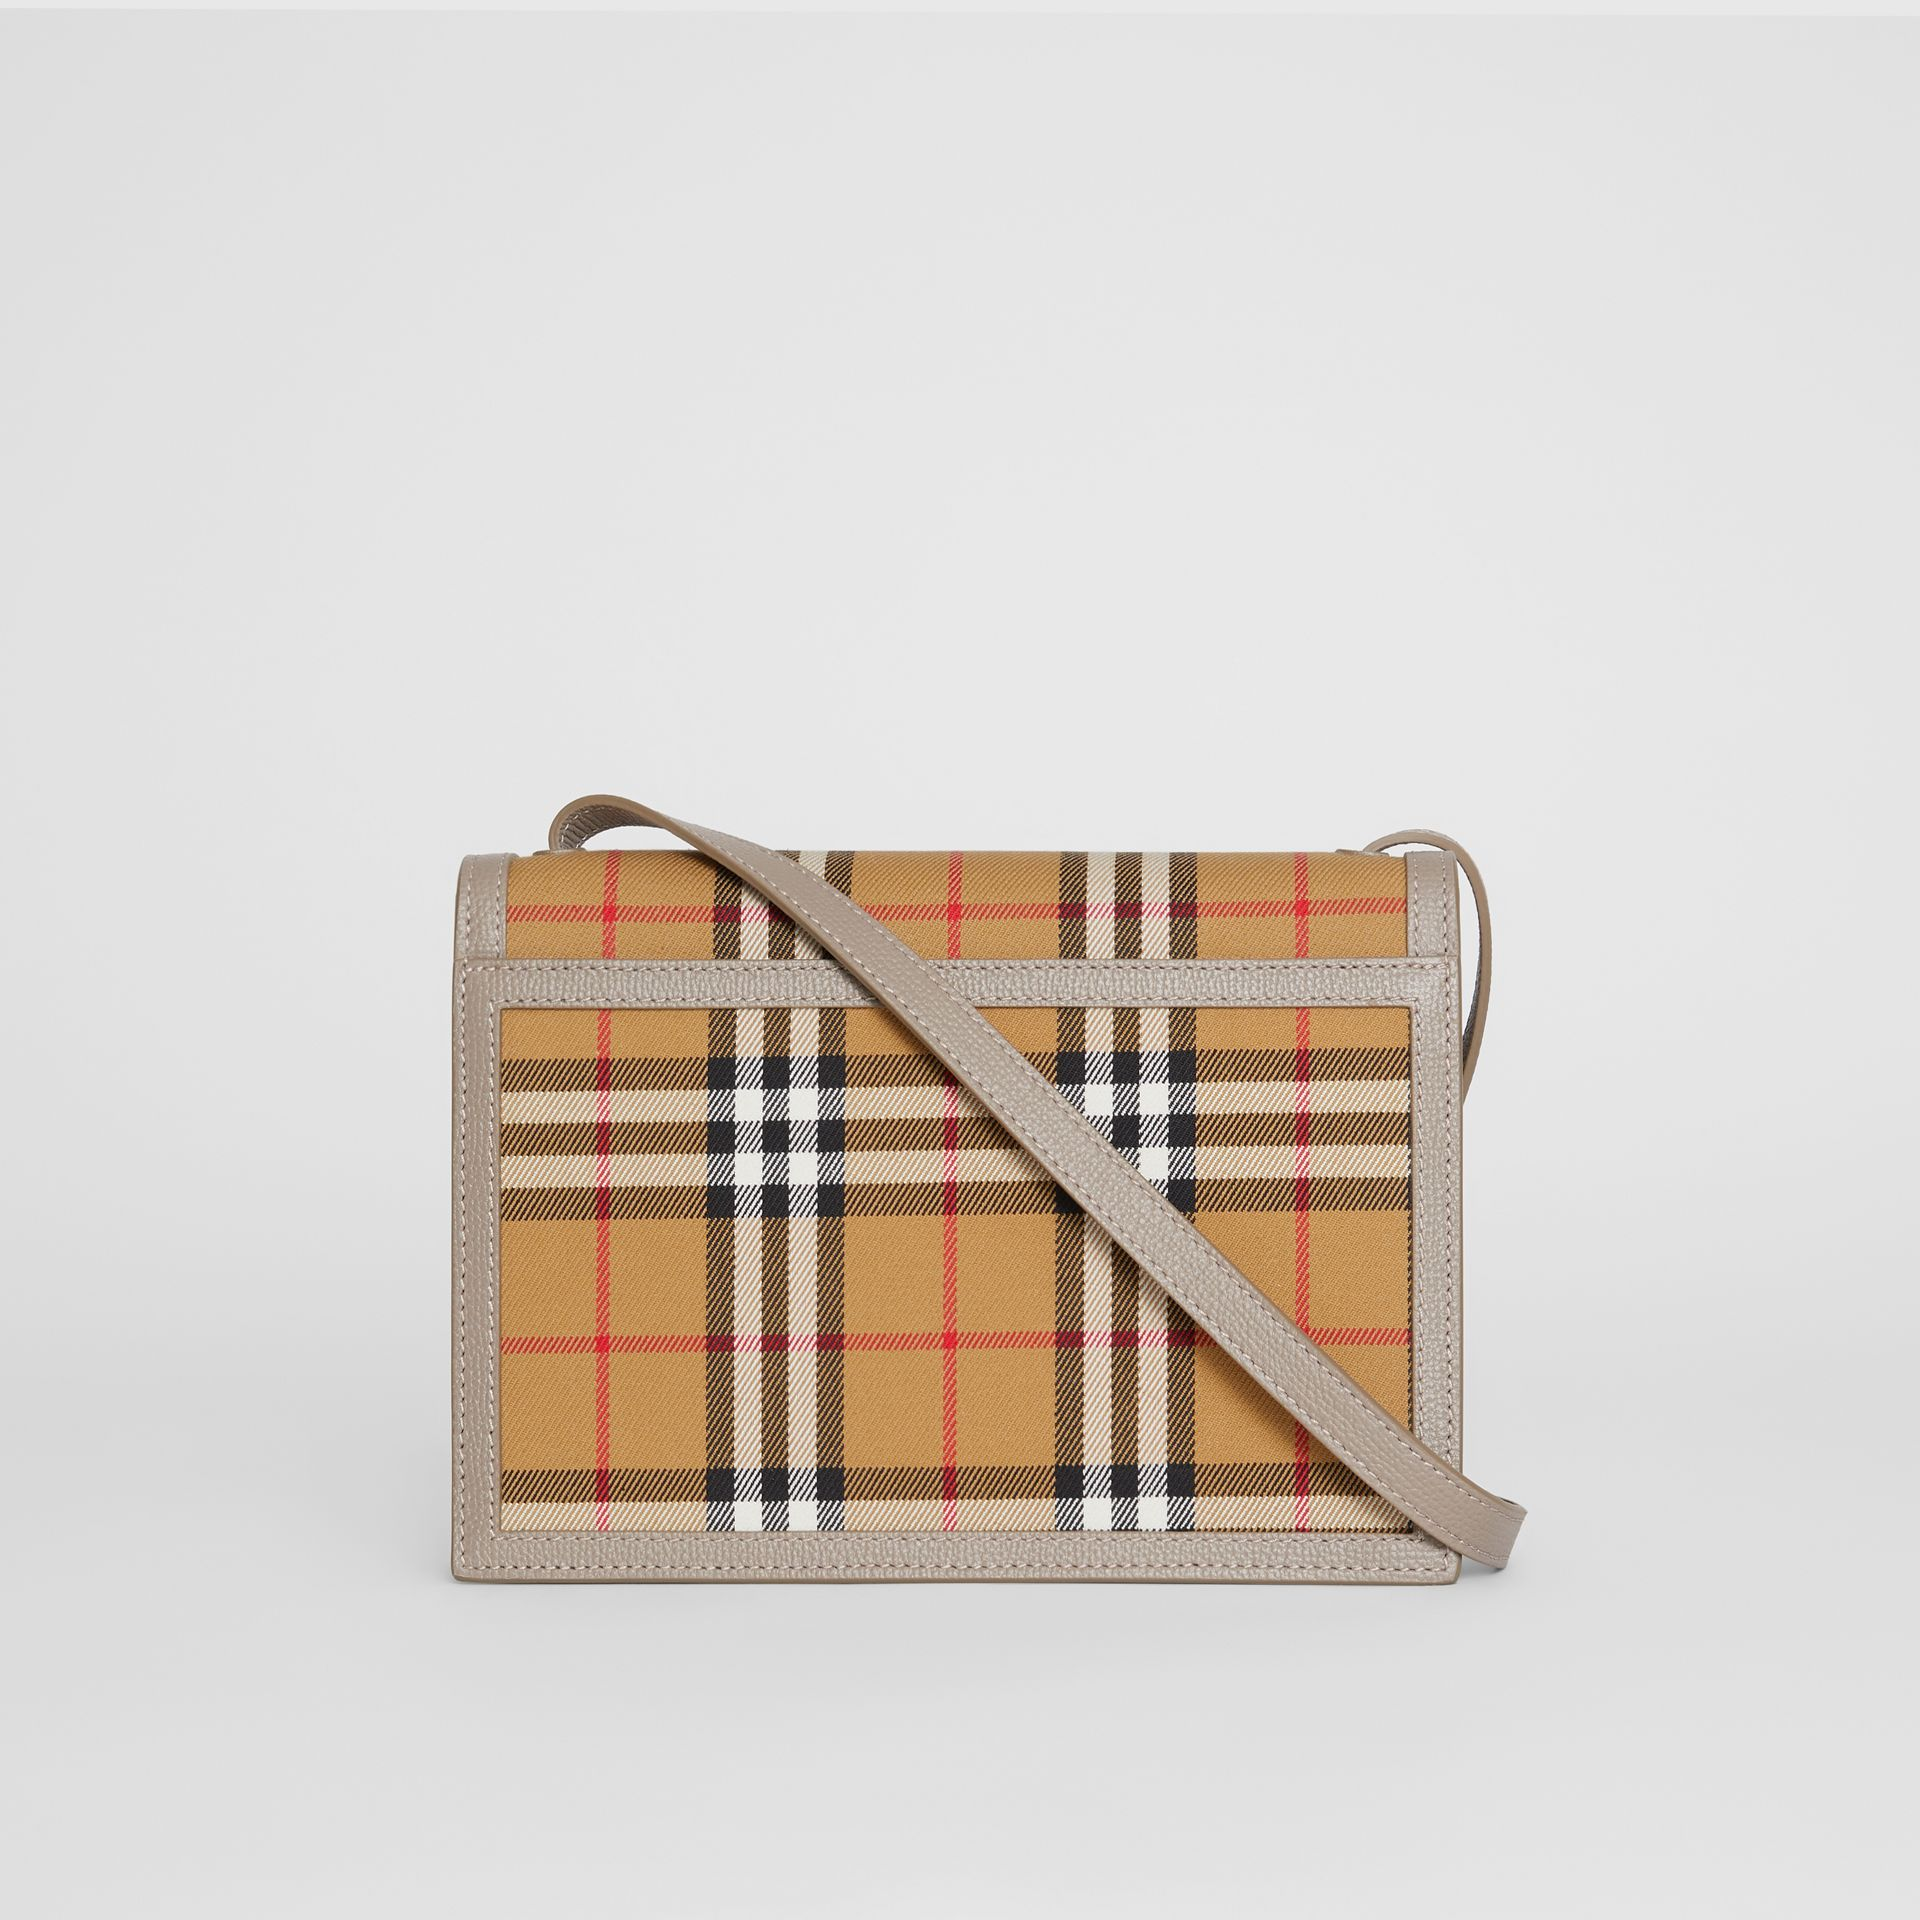 Small Vintage Check and Leather Crossbody Bag in Taupe Brown - Women | Burberry United Kingdom - gallery image 7